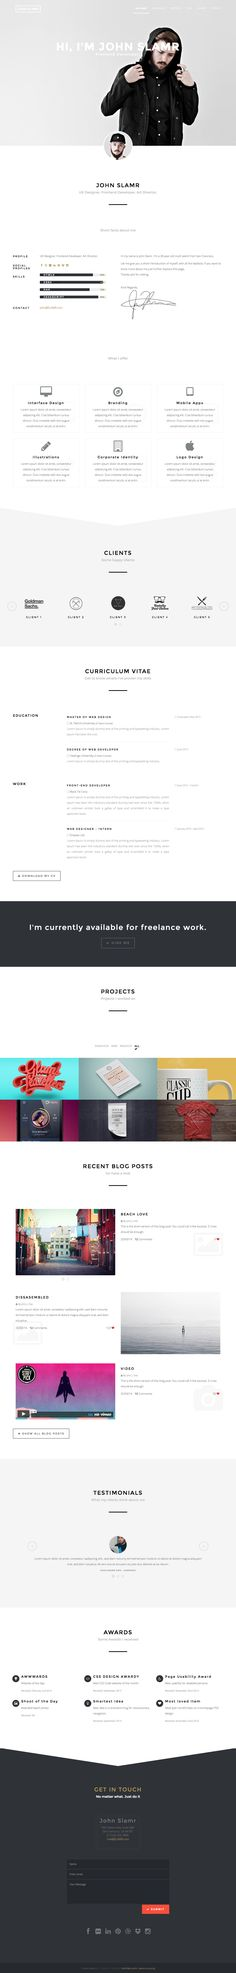 'Slamr' is a slick CV-style One Page HTML template. The long scrolling responsive template can also easily be used for a portfolio featuring AJAX-loading project items. Other features include slideshow header, video background, work history, awards, portfolio category filter, testimonial slider and a footer contact form.